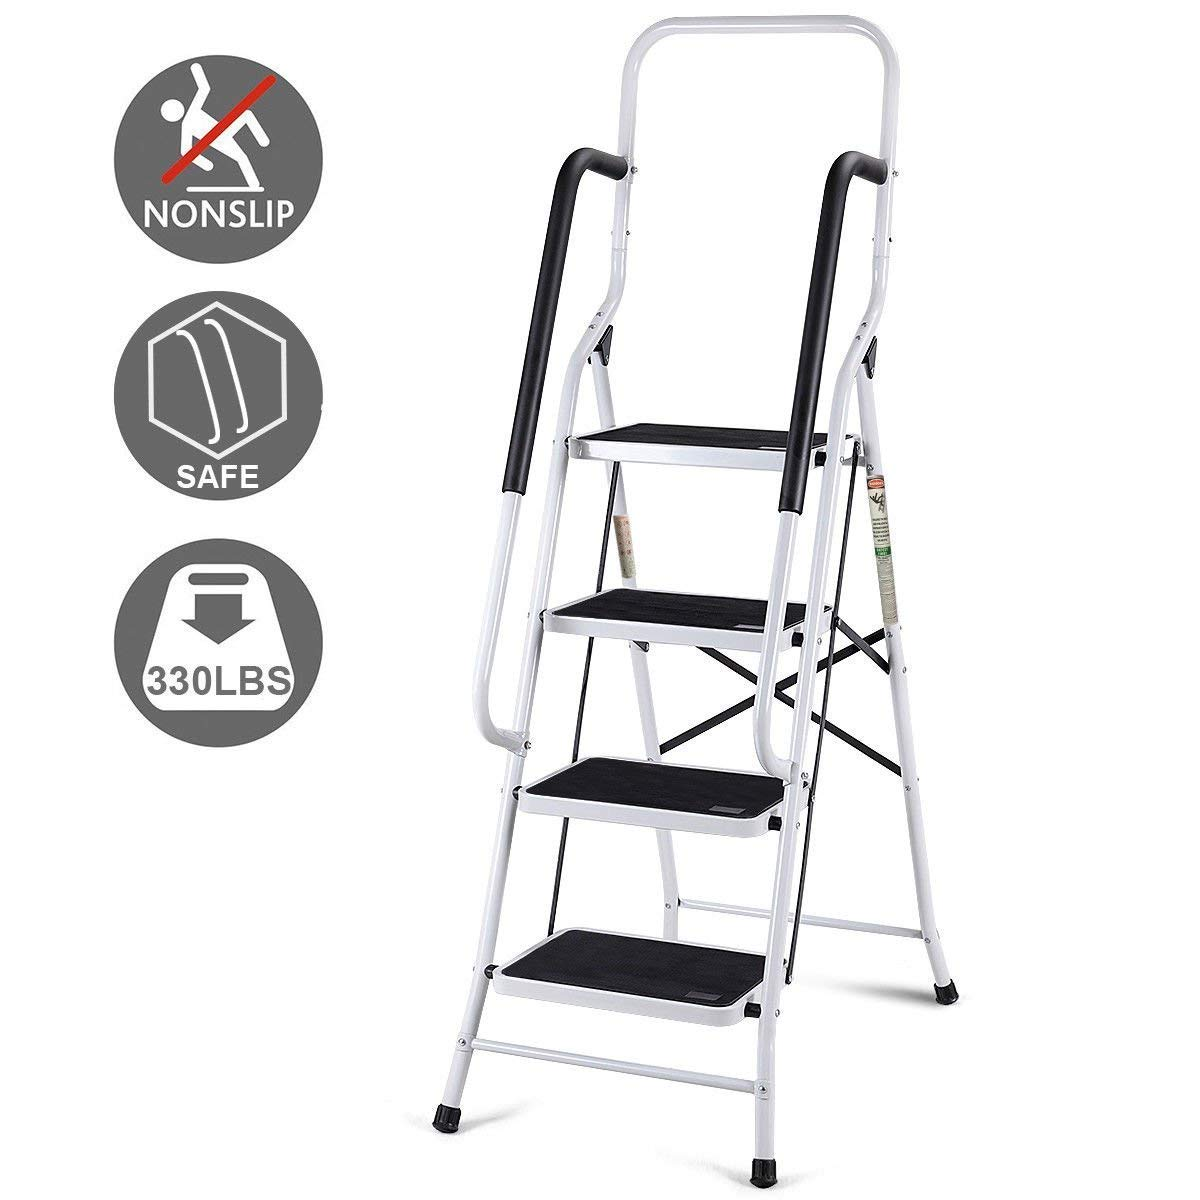 Giantex 2 in 1 Non-Slip Step Ladder Folding Stool w/Handrails and Tool Pouch Caddy (4 Step Ladder) by Giantex (Image #6)